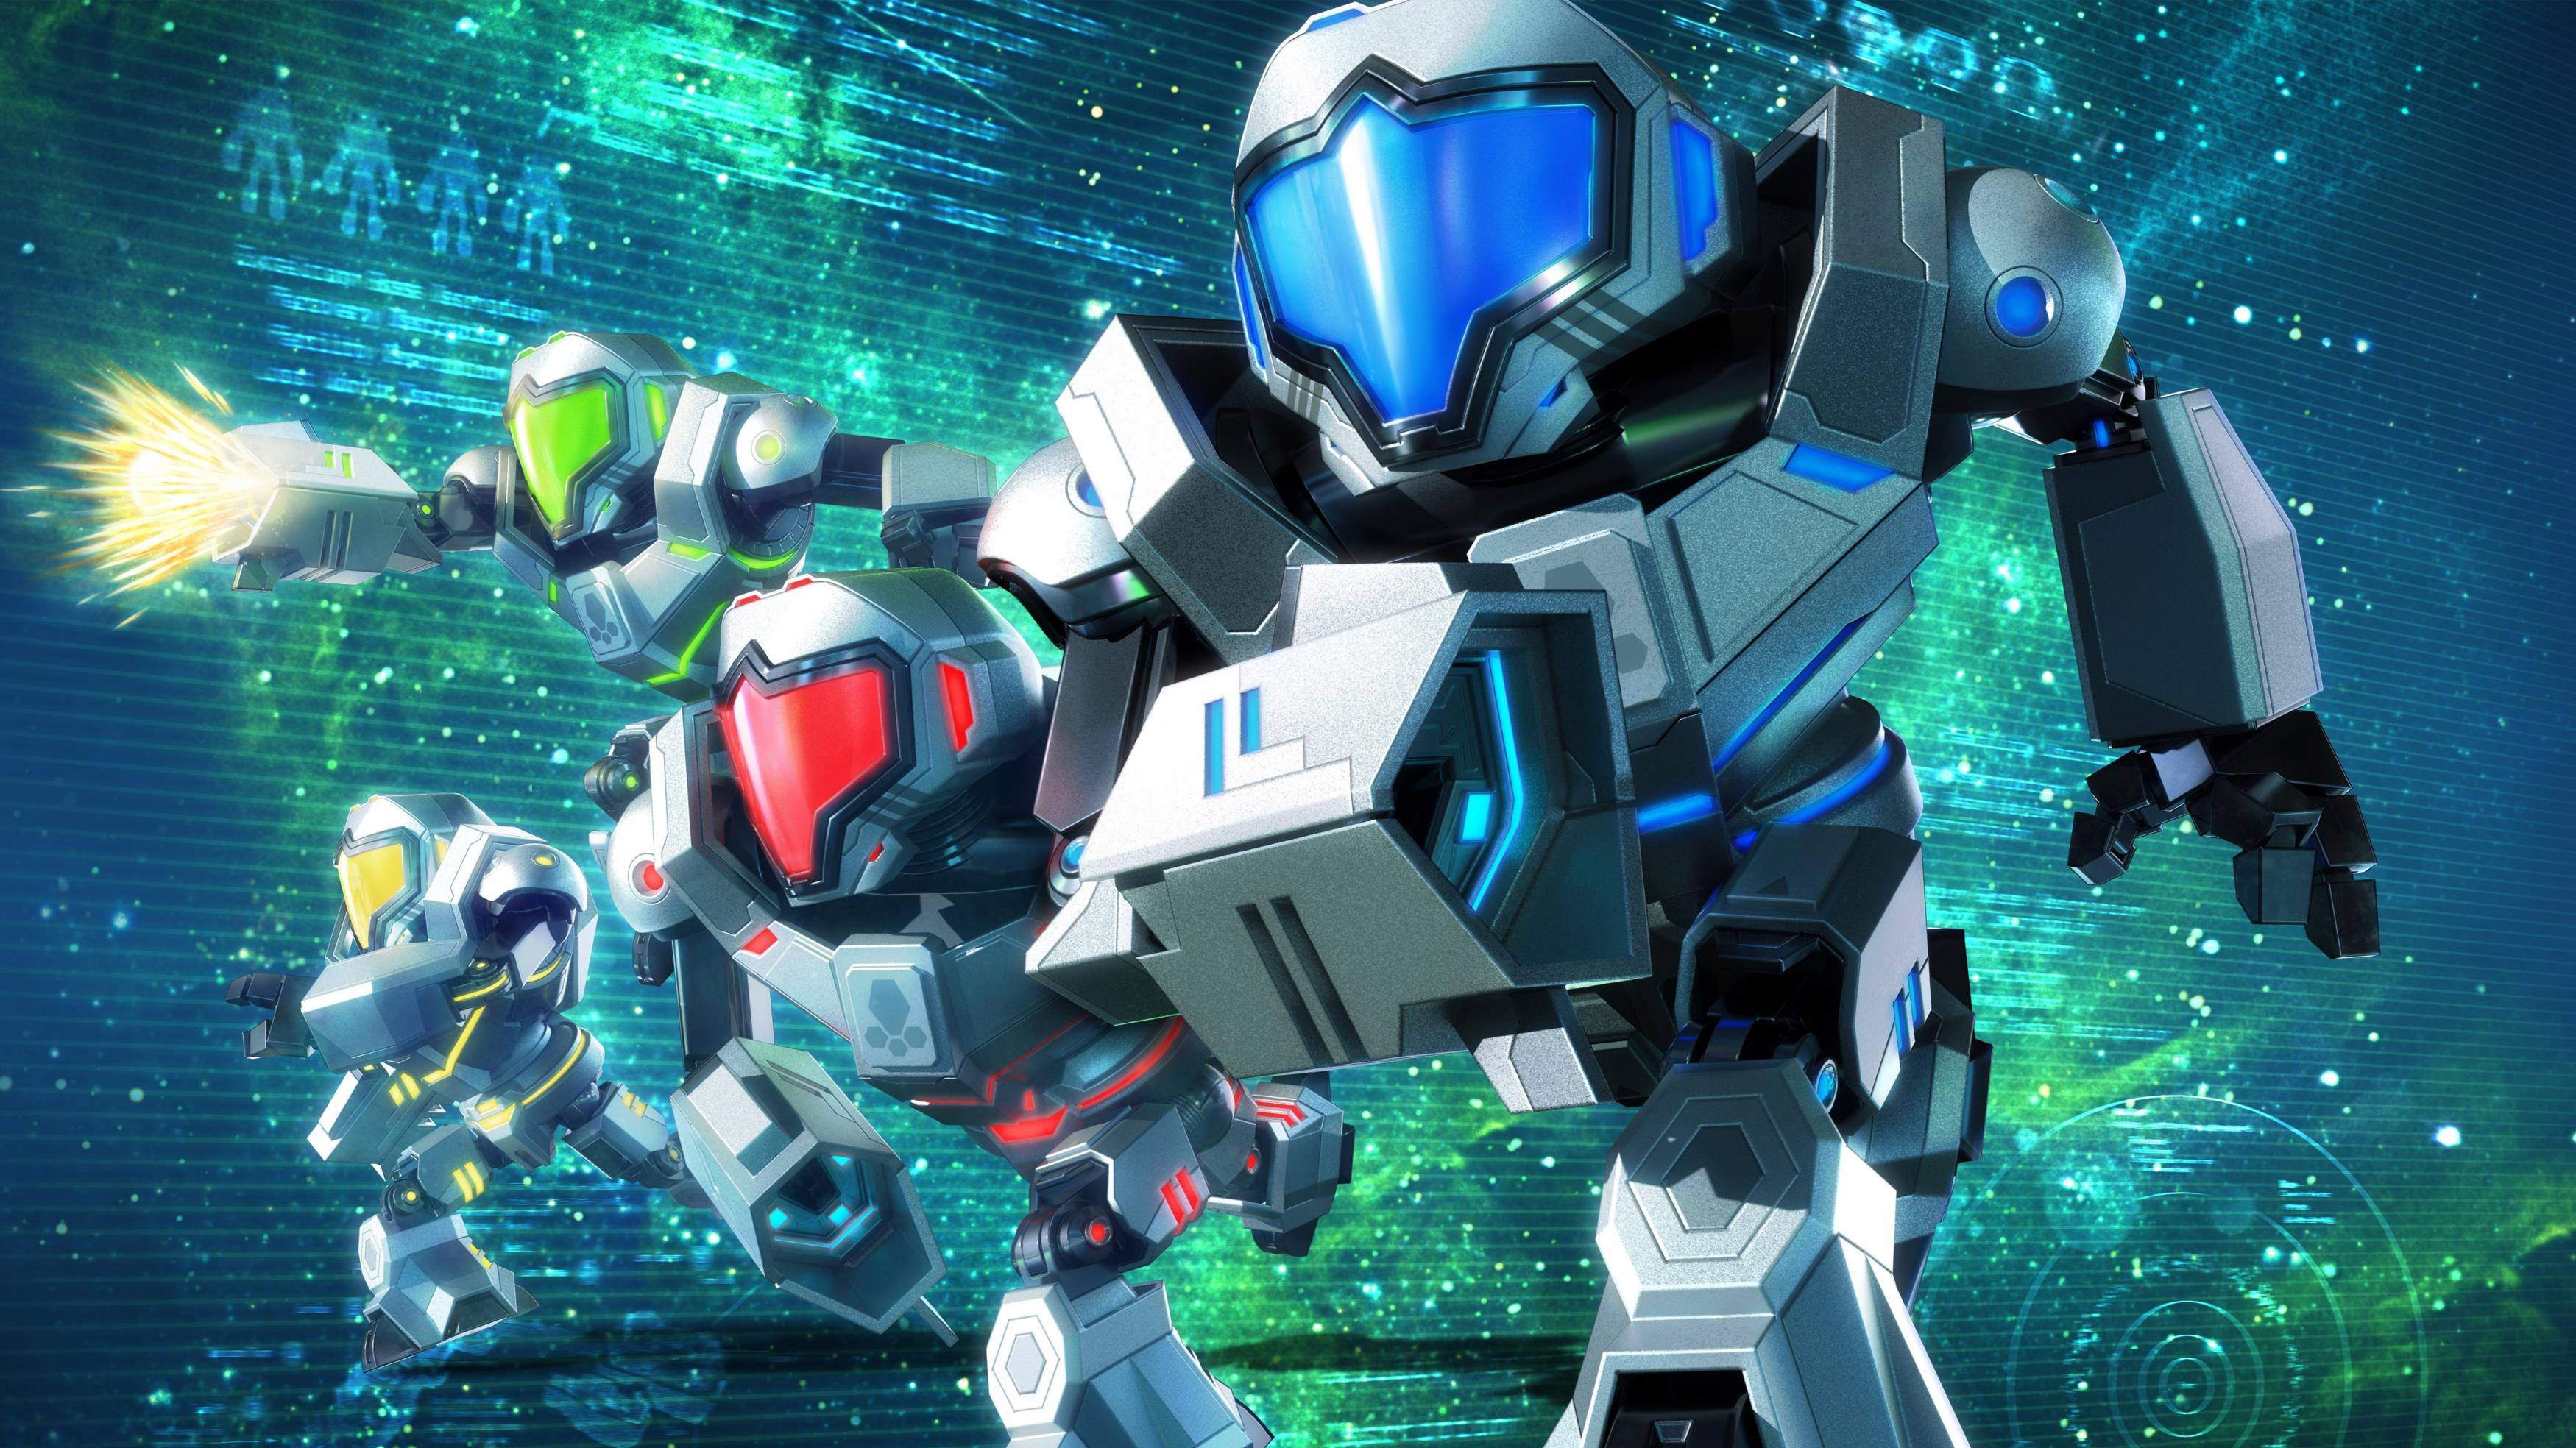 Metroid Prime Federation Force Nintendo 3DS обои скачать